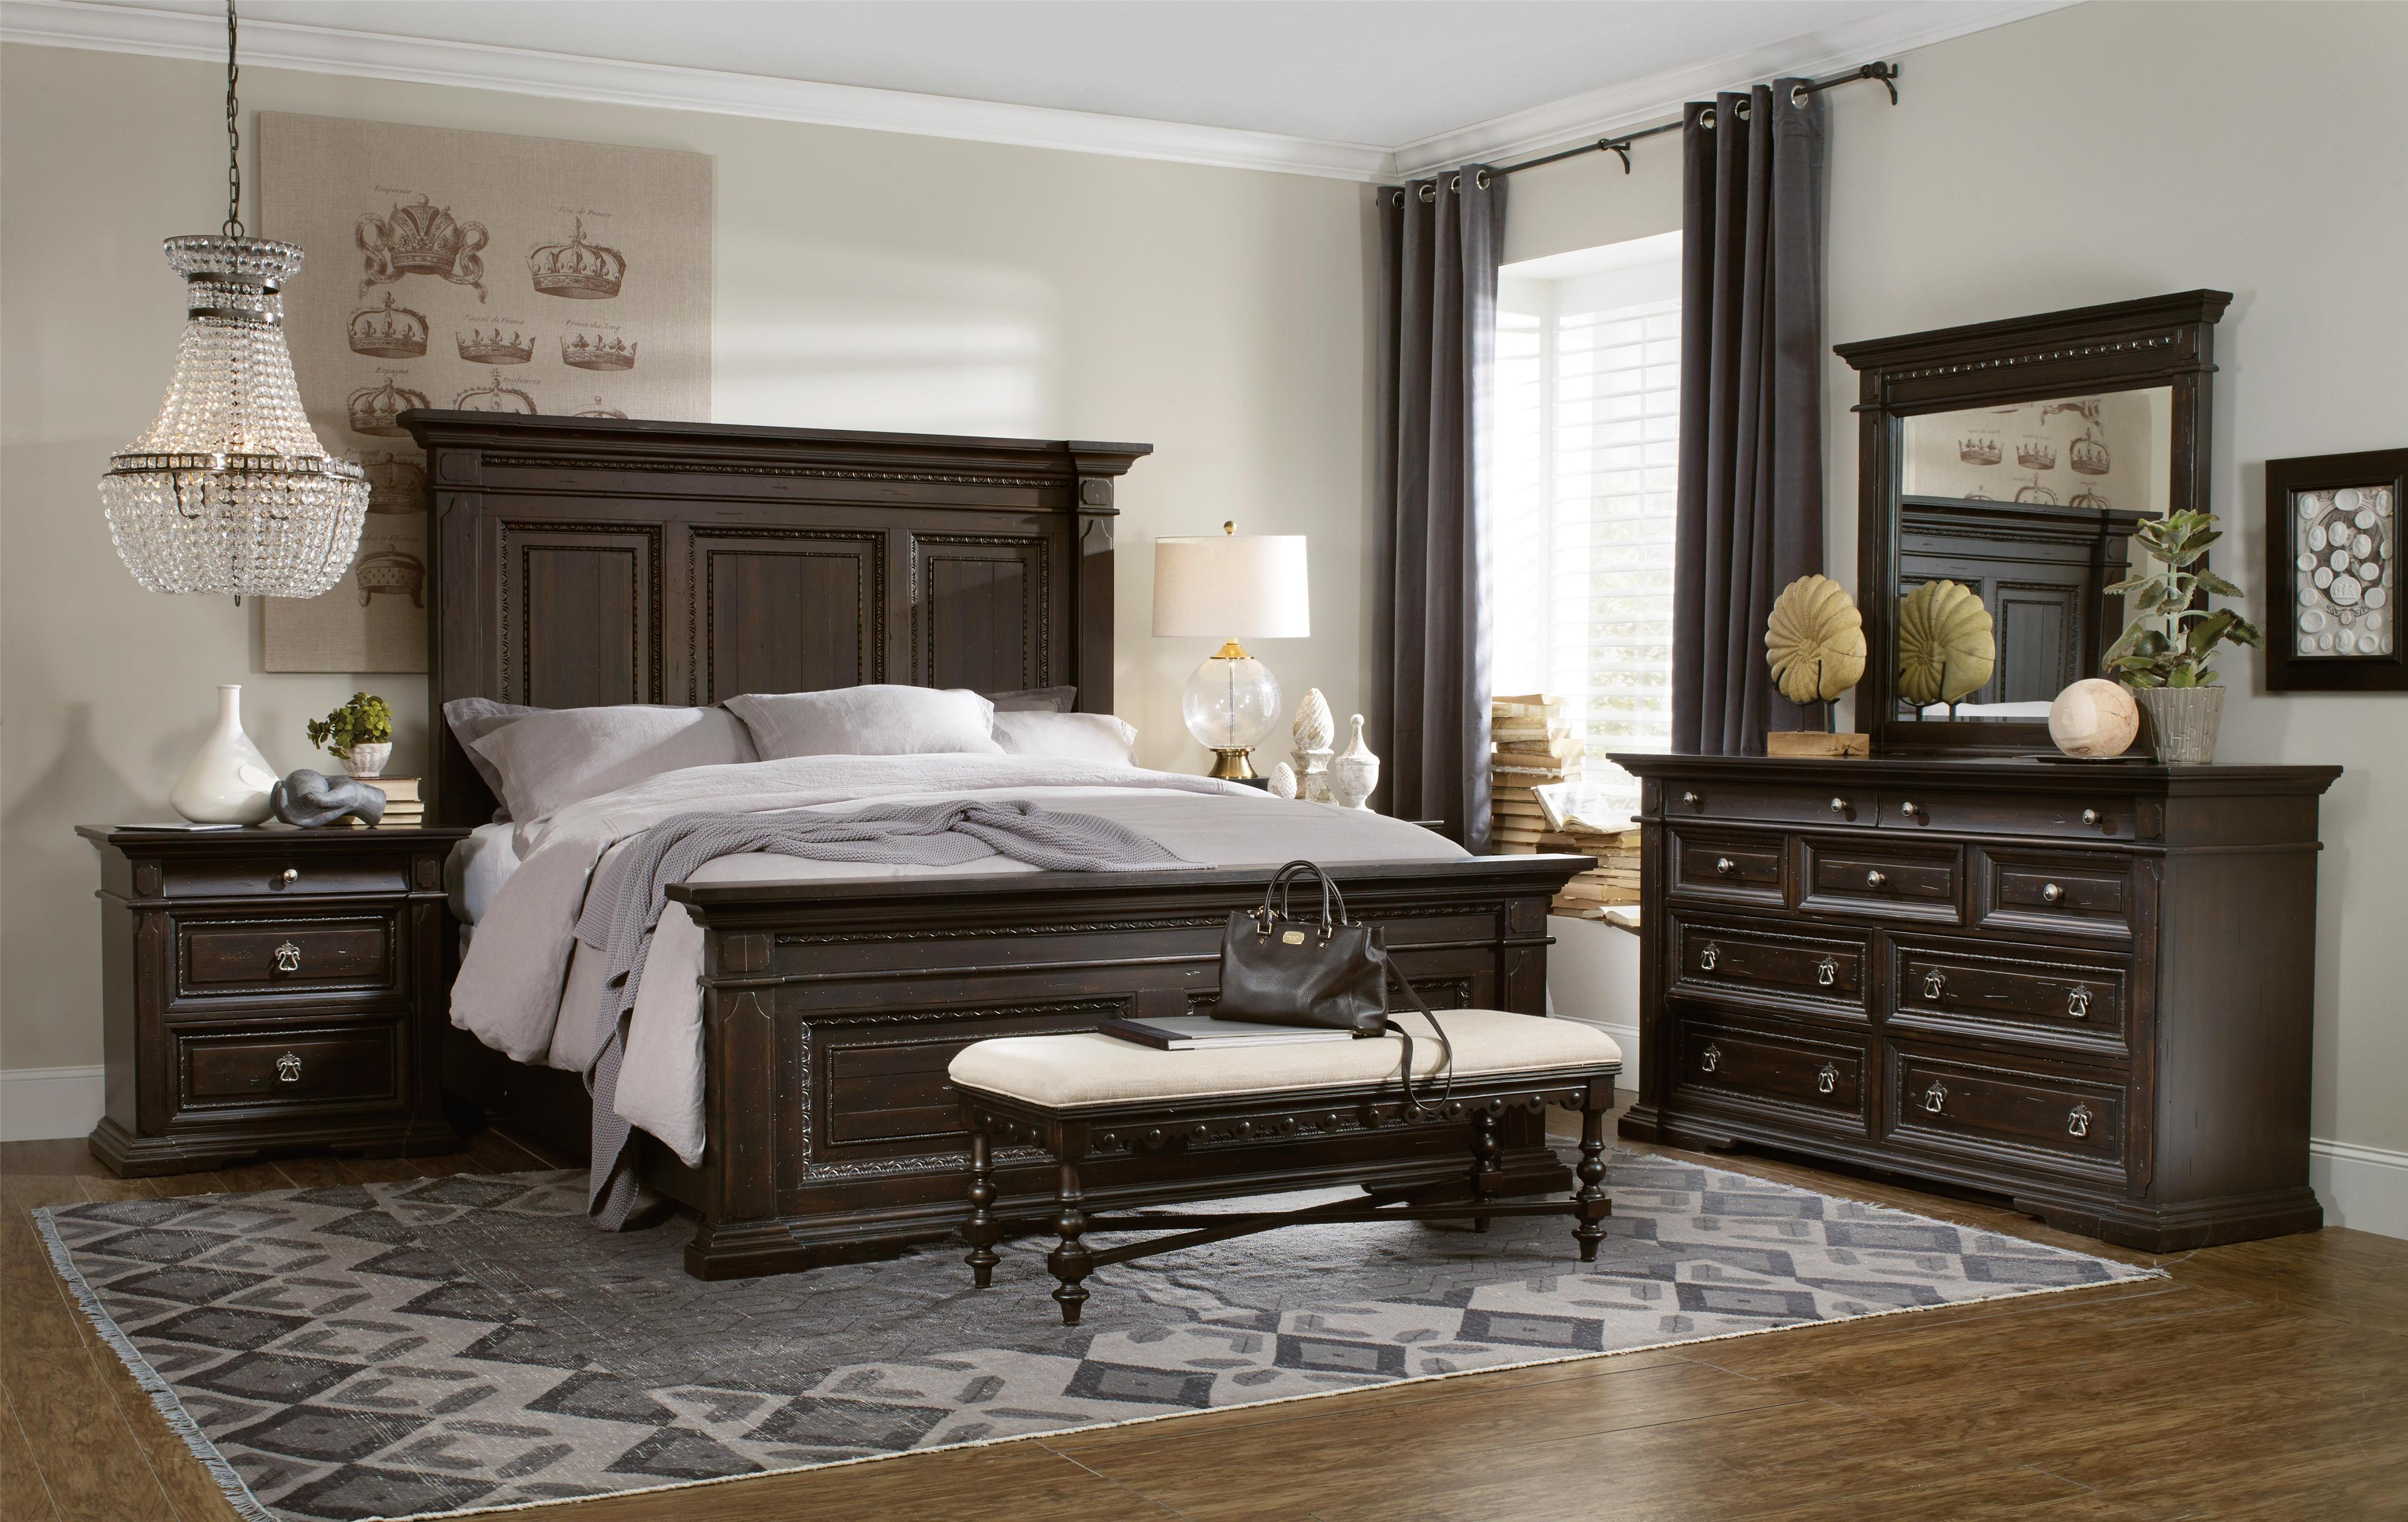 Treviso California King Bedroom Group by Hooker Furniture at Miller Waldrop Furniture and Decor